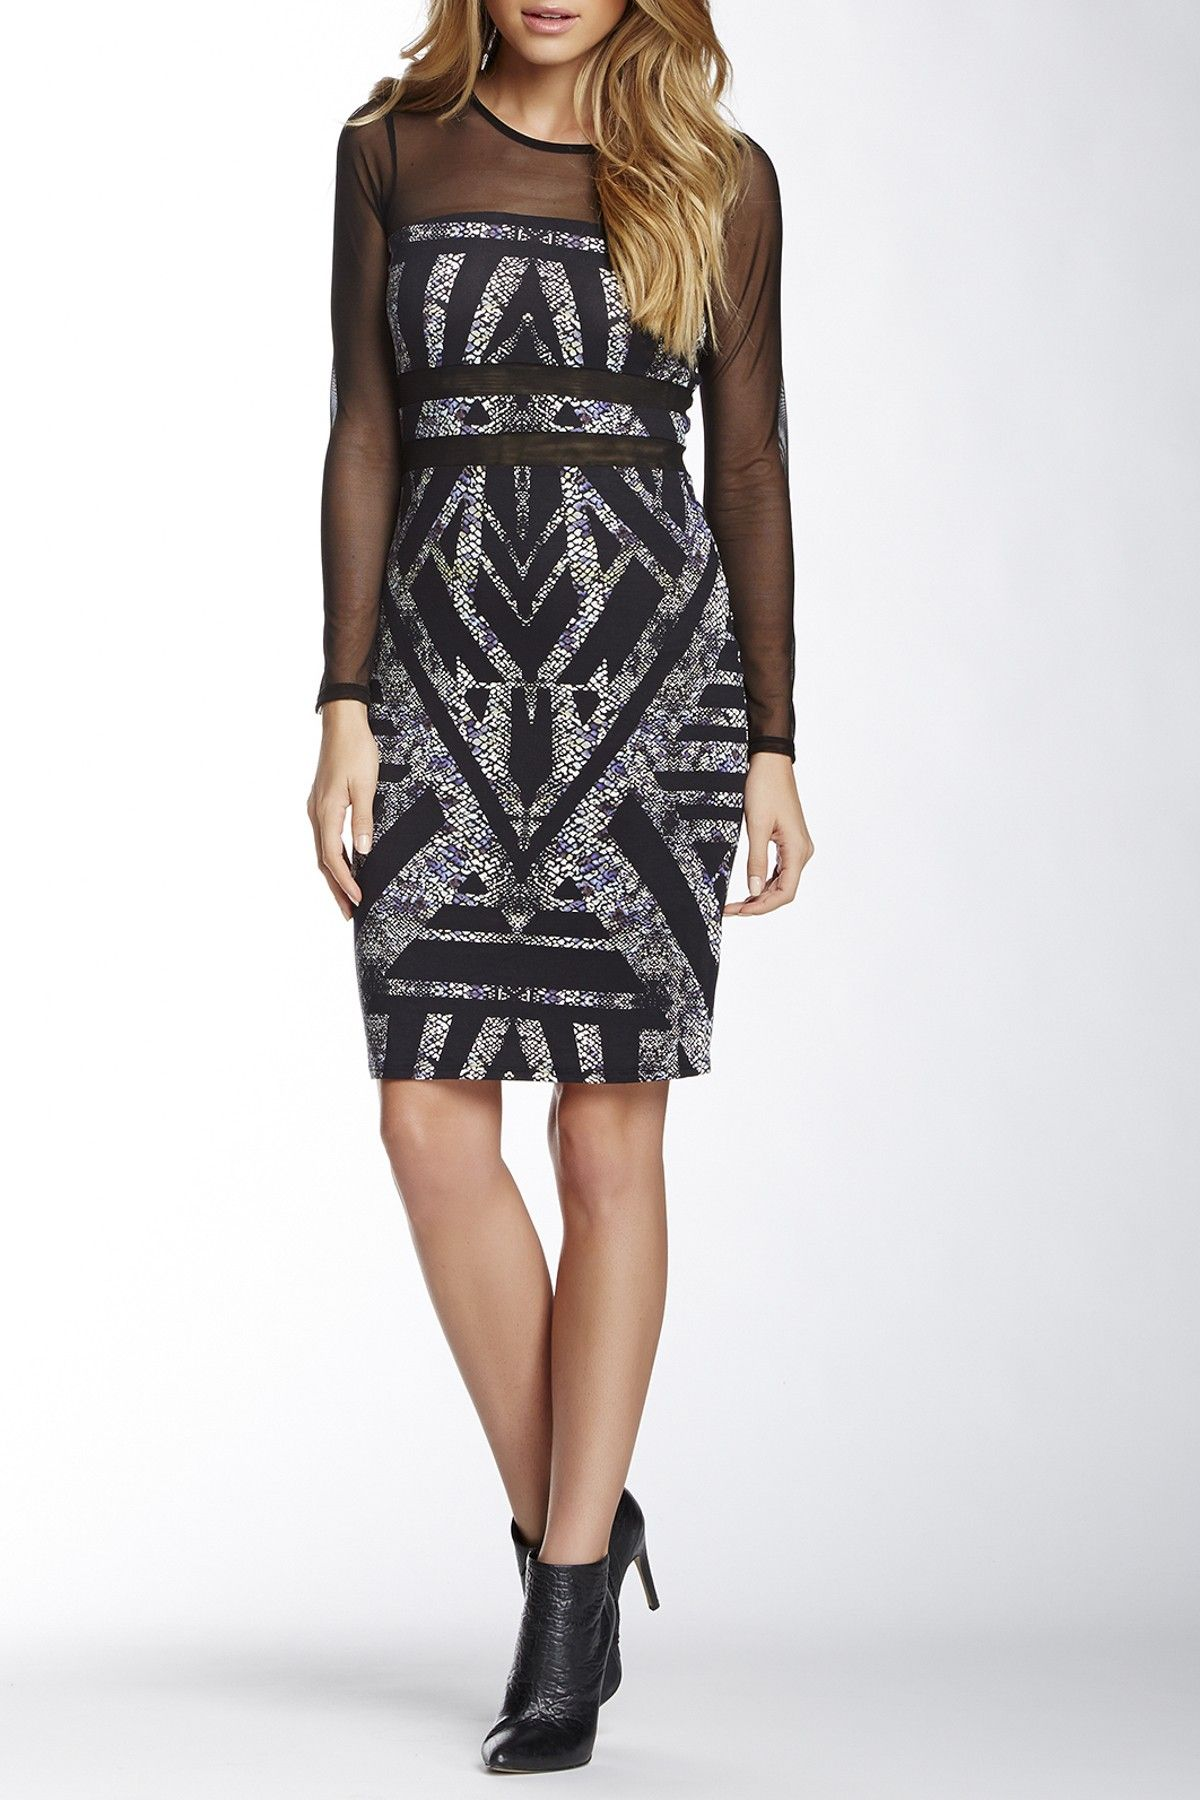 Andrea Mesh Print Dress by Weston Wear | nordstrom rack - super cute but sure as hell doesn't look like that on me.